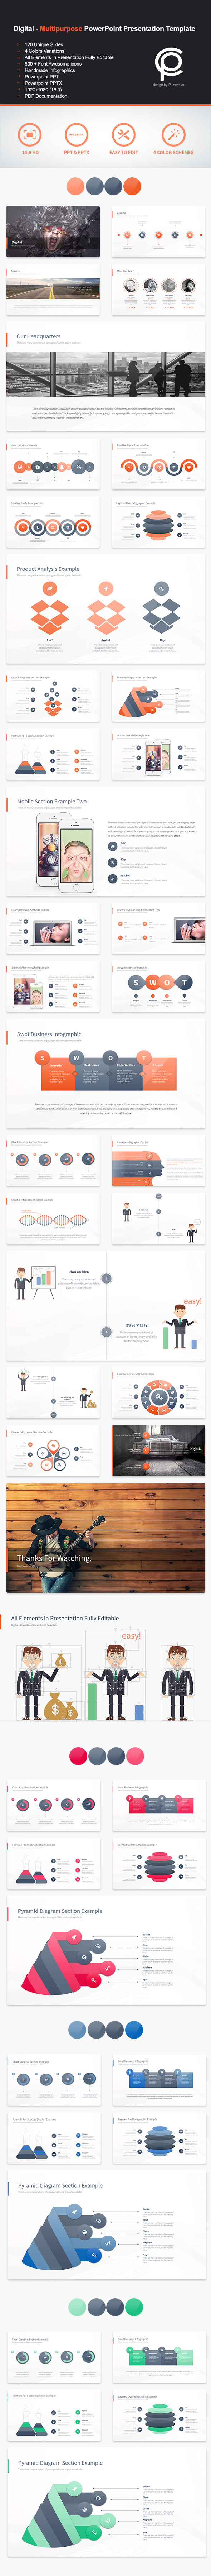 GraphicRiver Digital Multipurpose PowerPoint Presentation 11368460